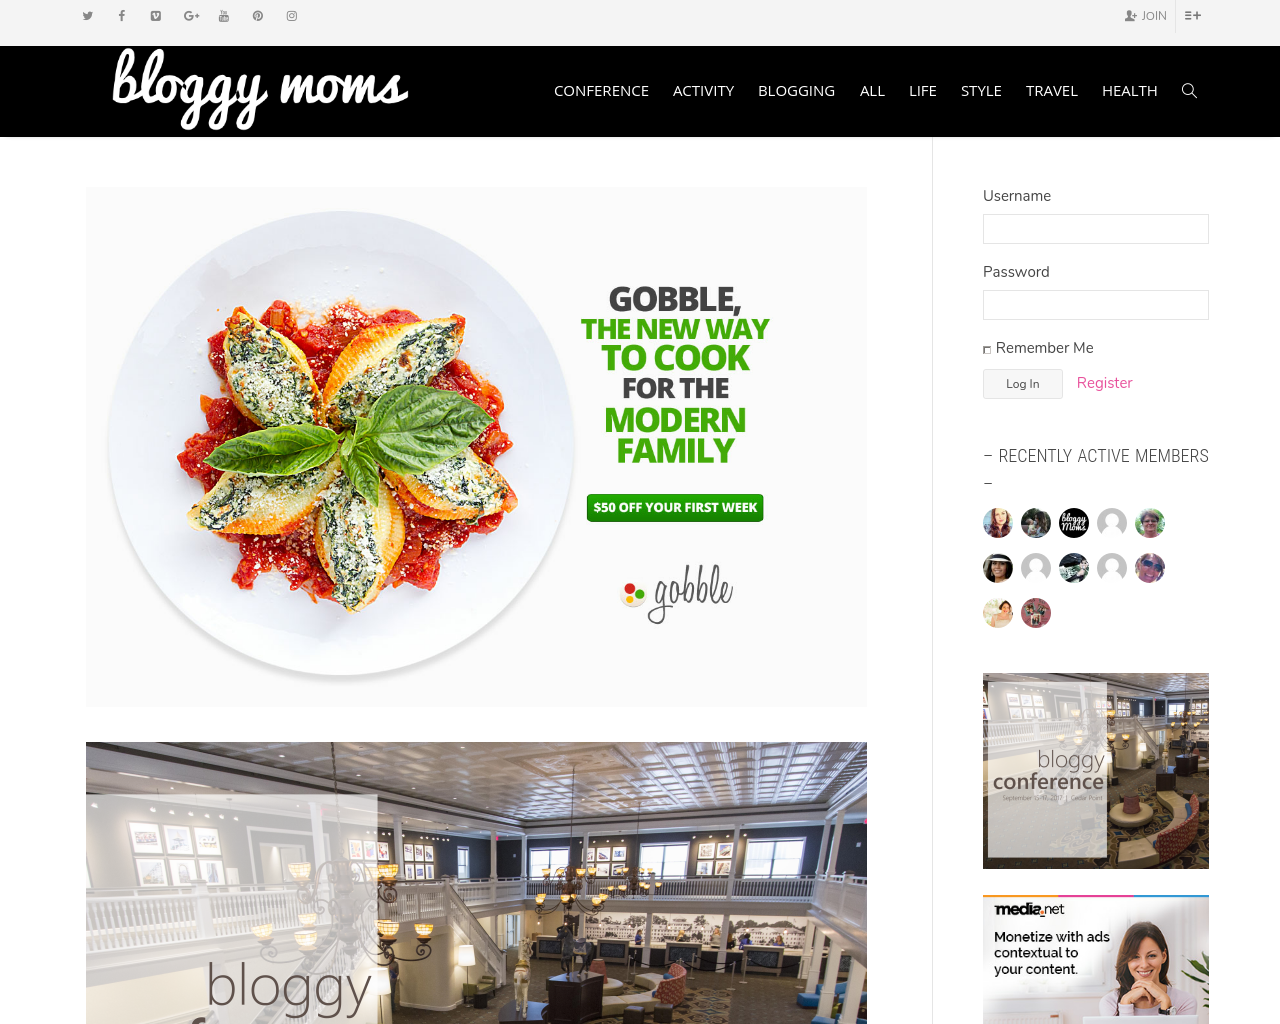 Bloggy-Moms-Advertising-Reviews-Pricing